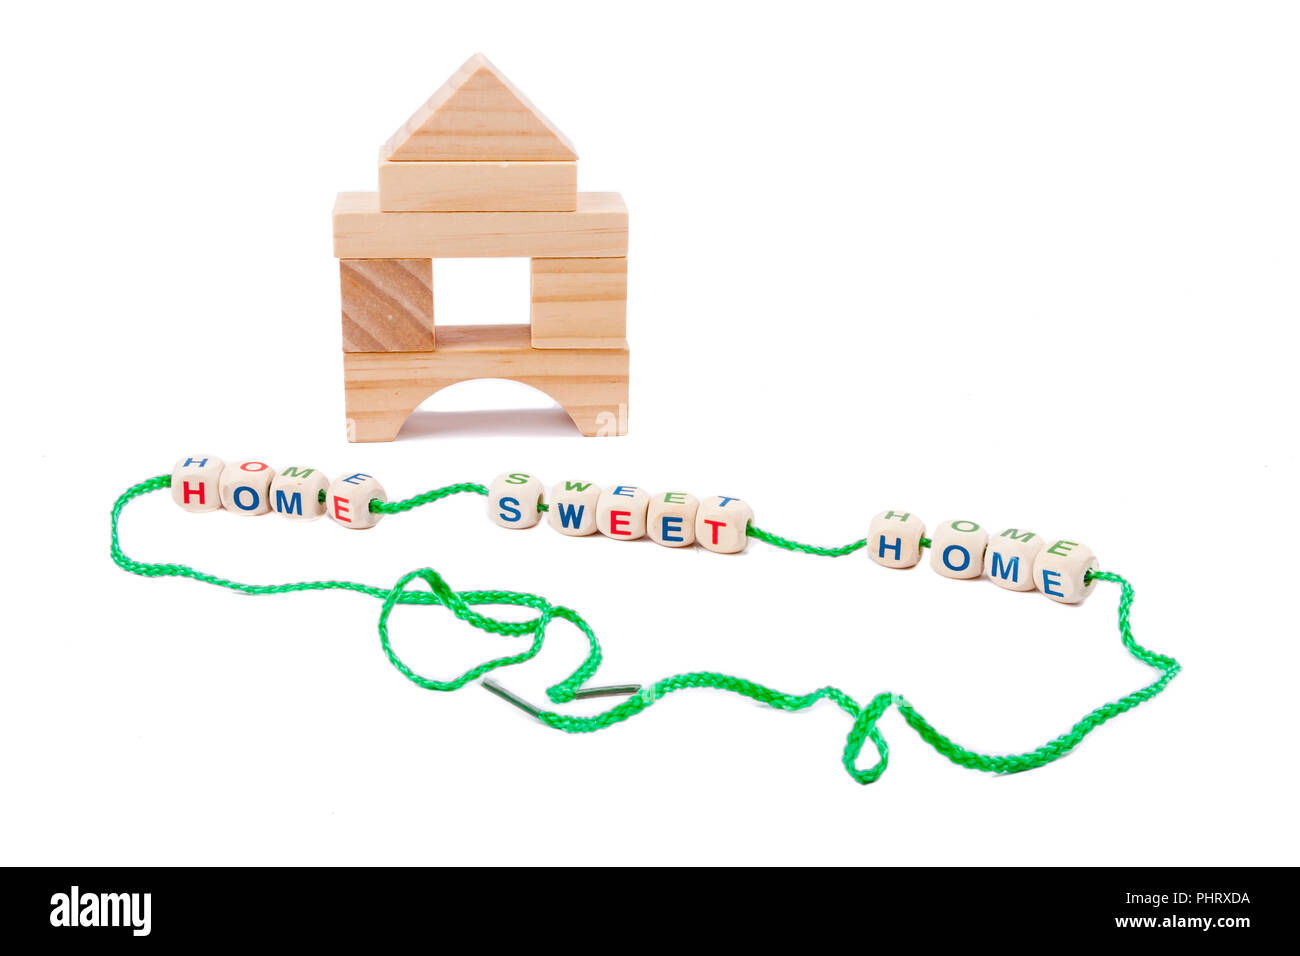 Wooden house and home sweet home text. - Stock Image